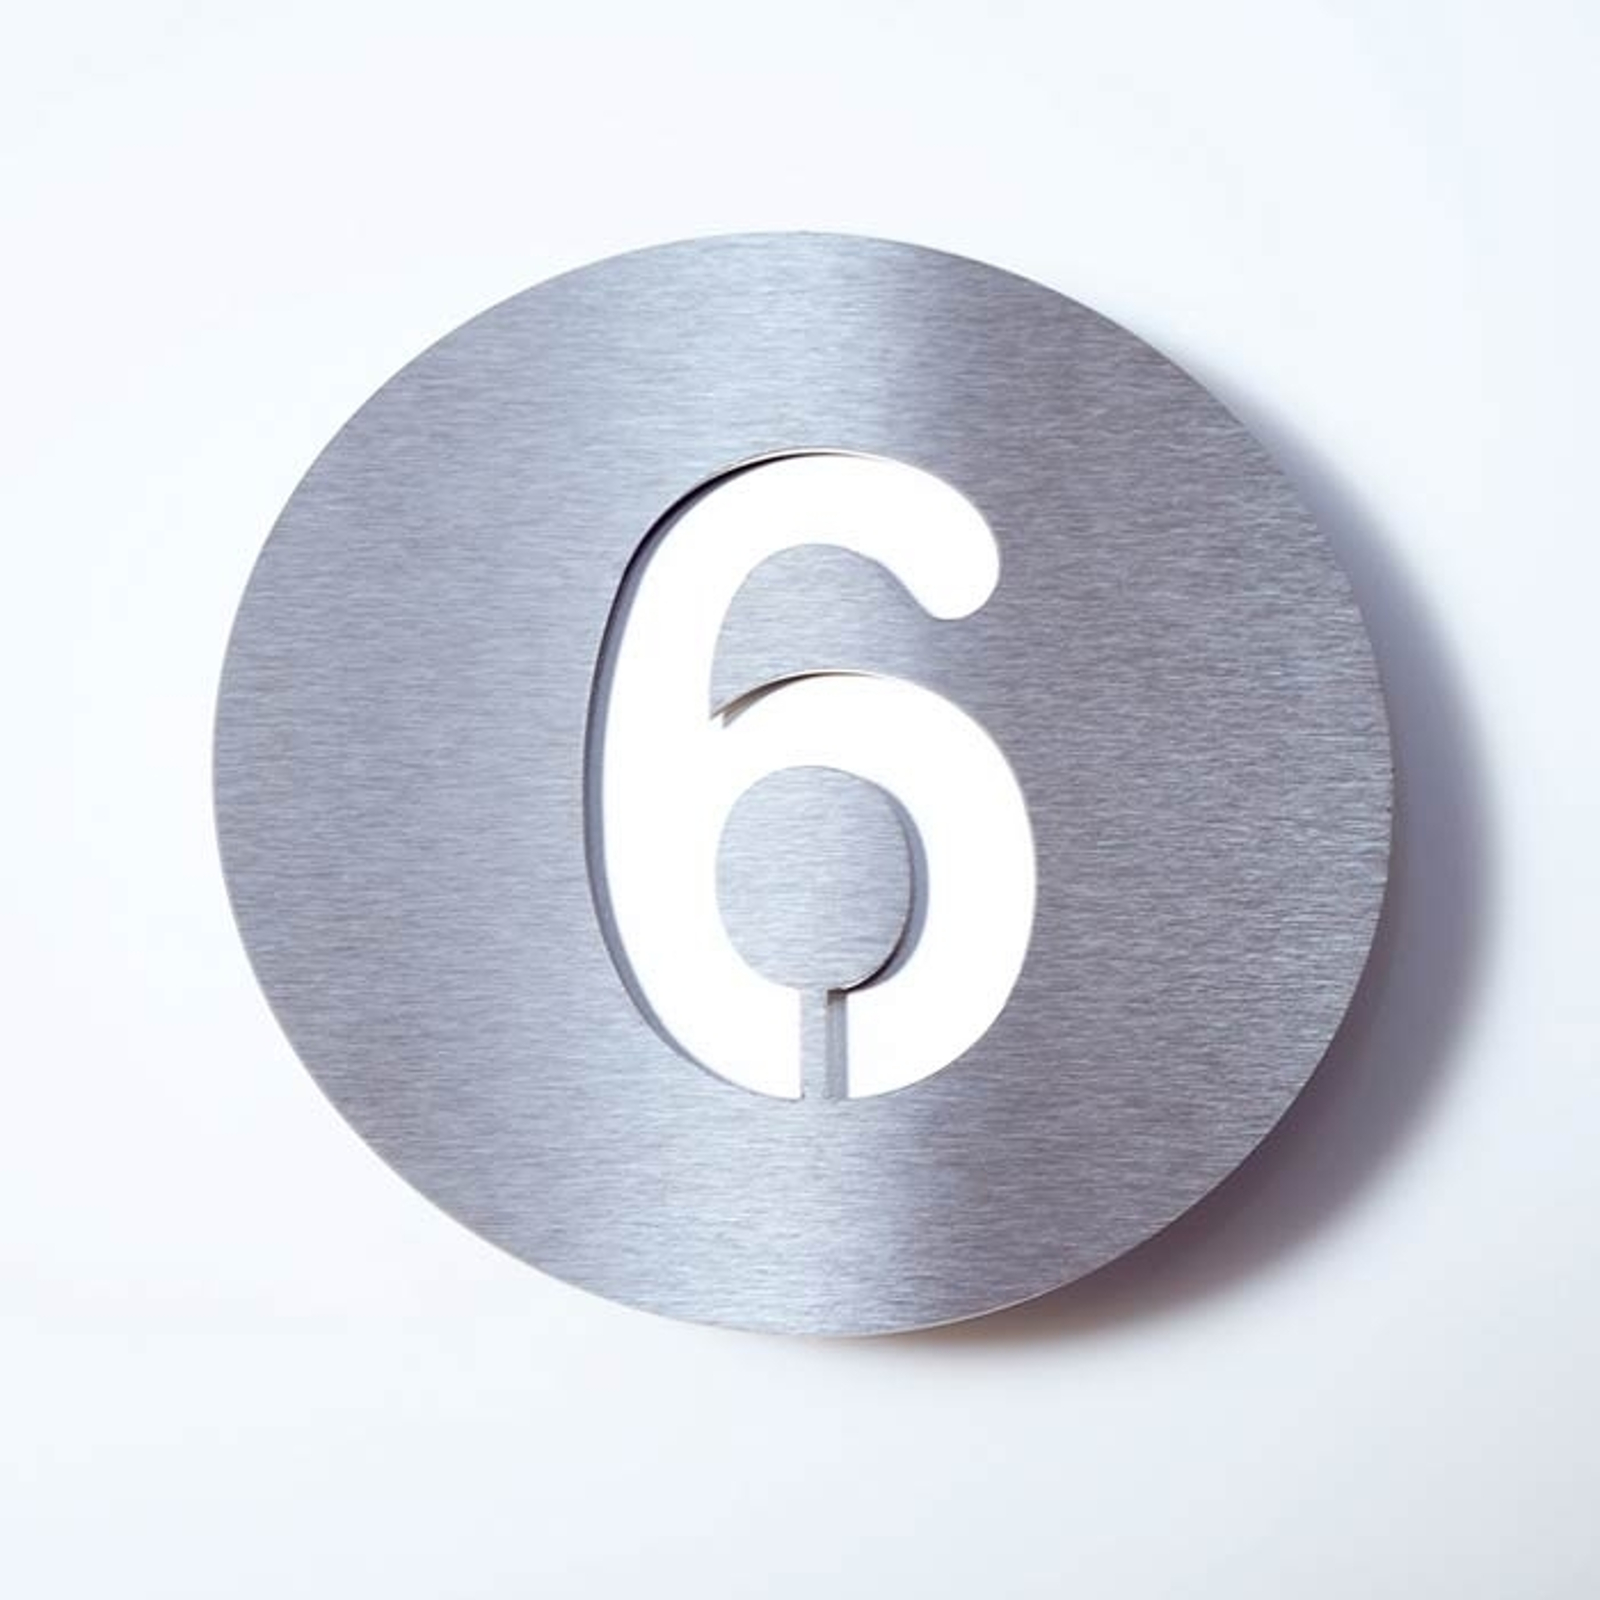 Stainless steel house number Round_1057084_1